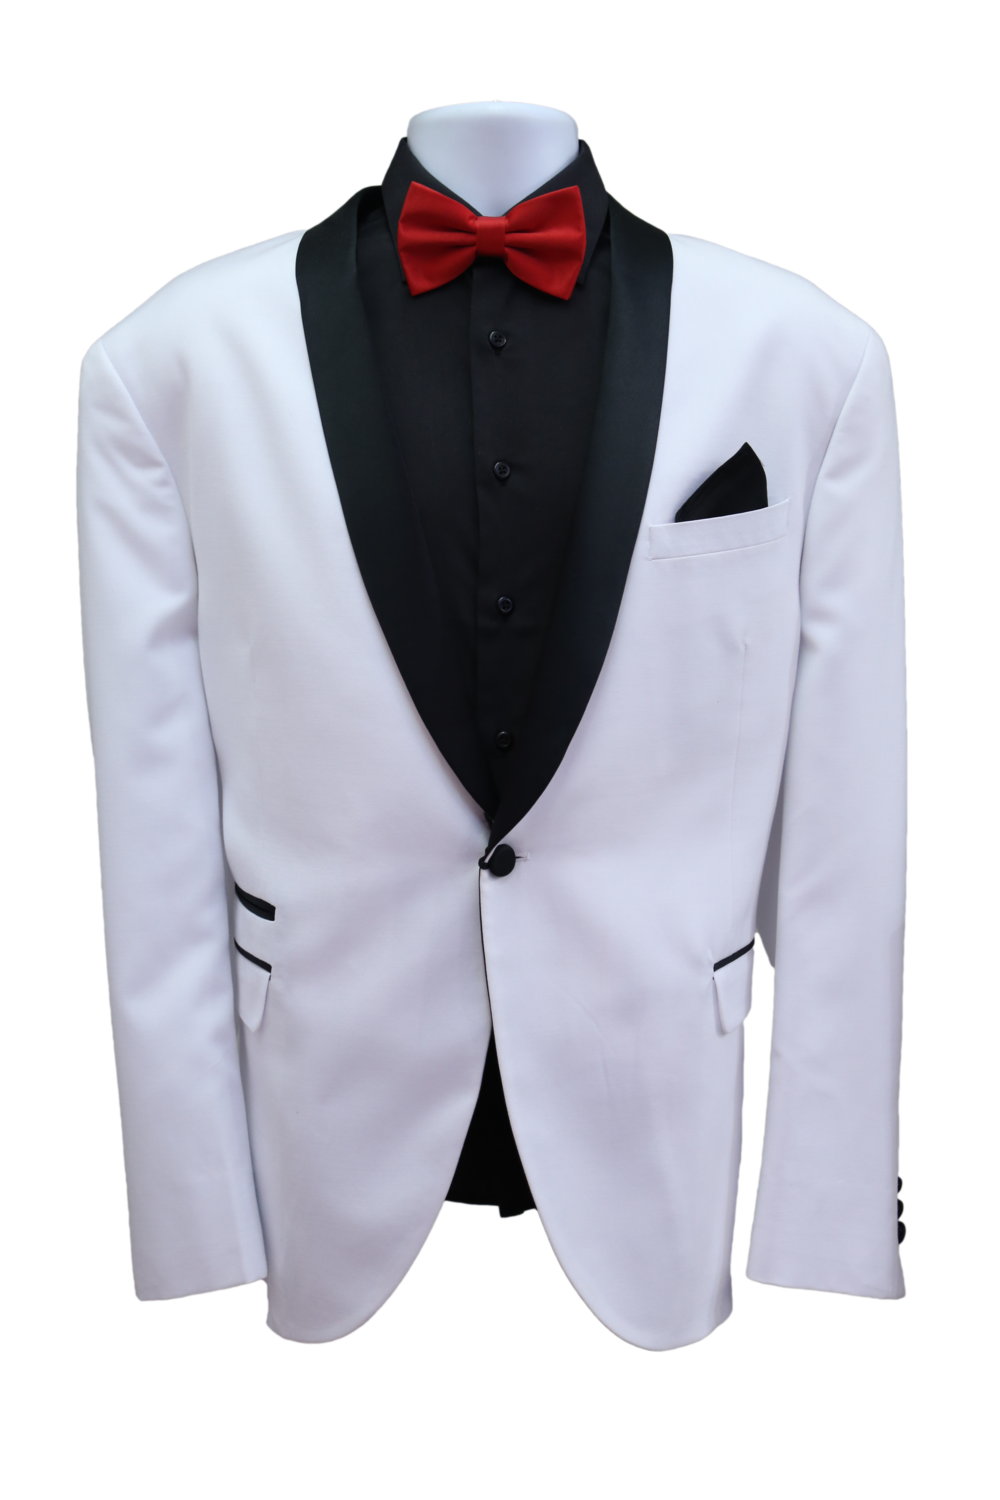 17 White Tux.png